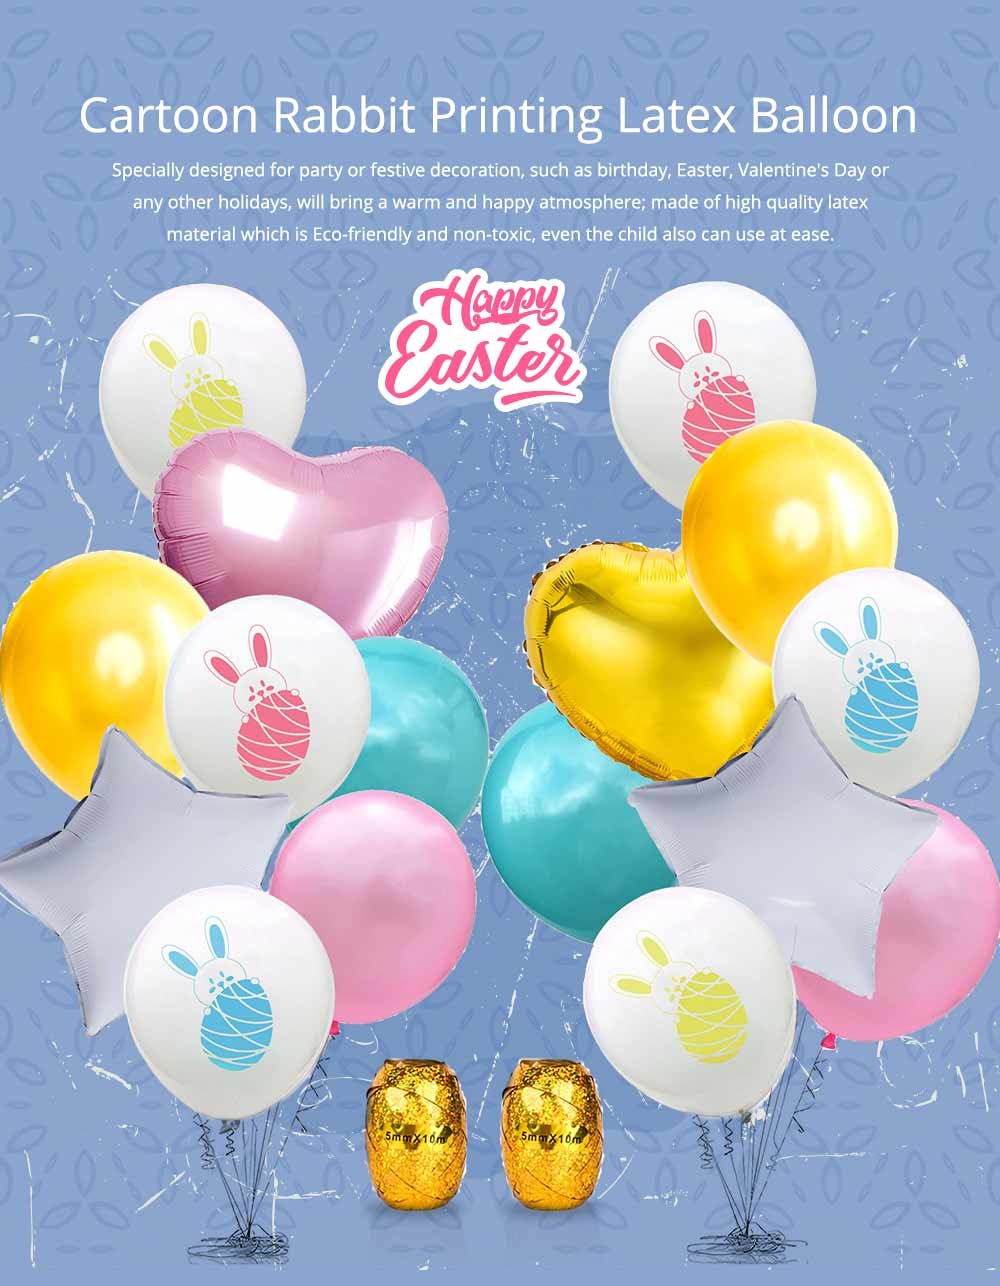 Cartoon Rabbit Printing Latex Balloon, Birthday Party Balloons with Ribbon for Festival Easter Decoration Single or Double Bunch 6